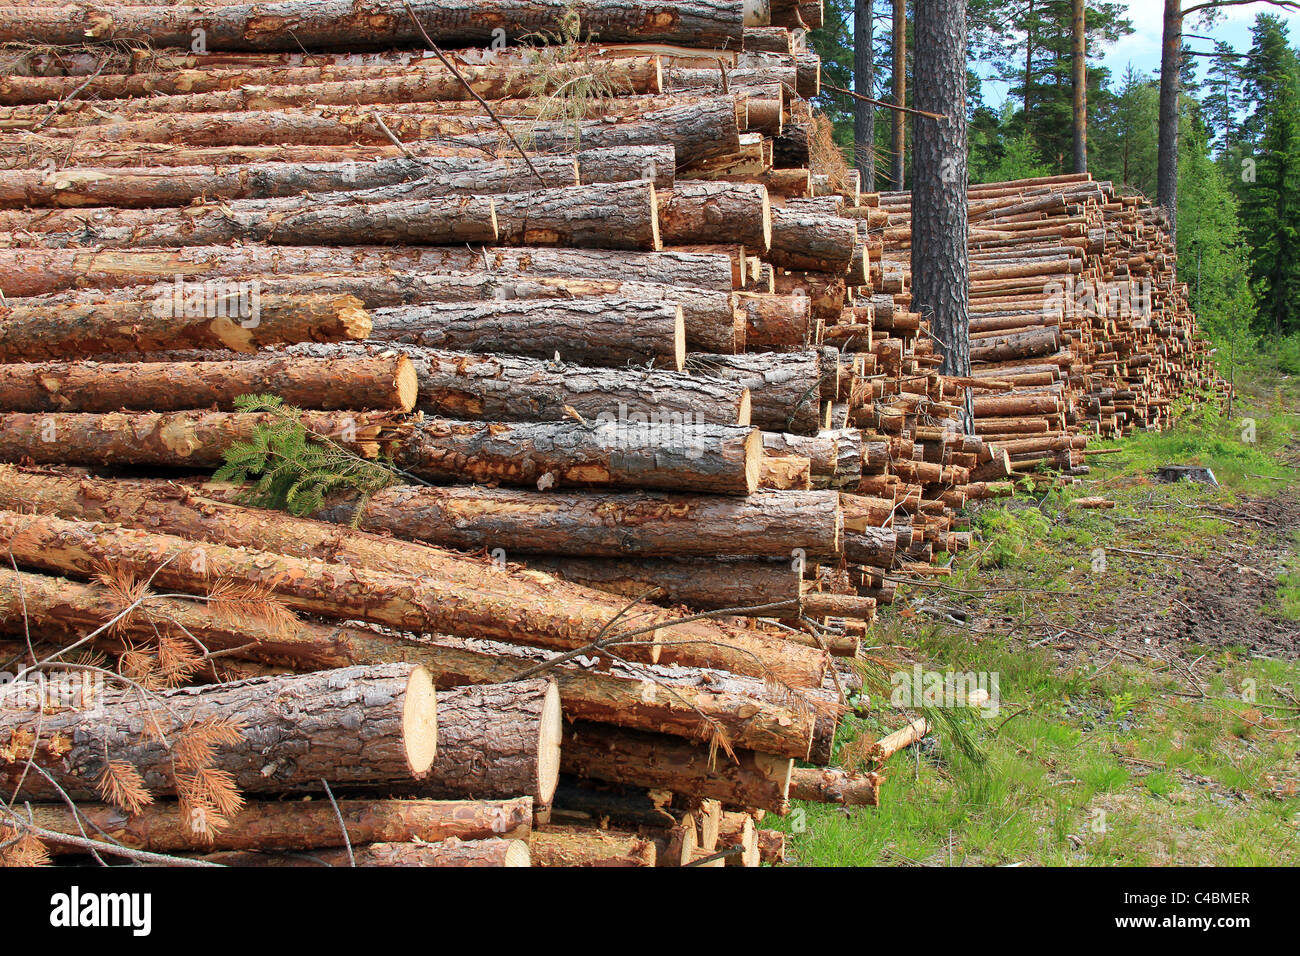 Two stacks of cut softwood in pine forest - Stock Image